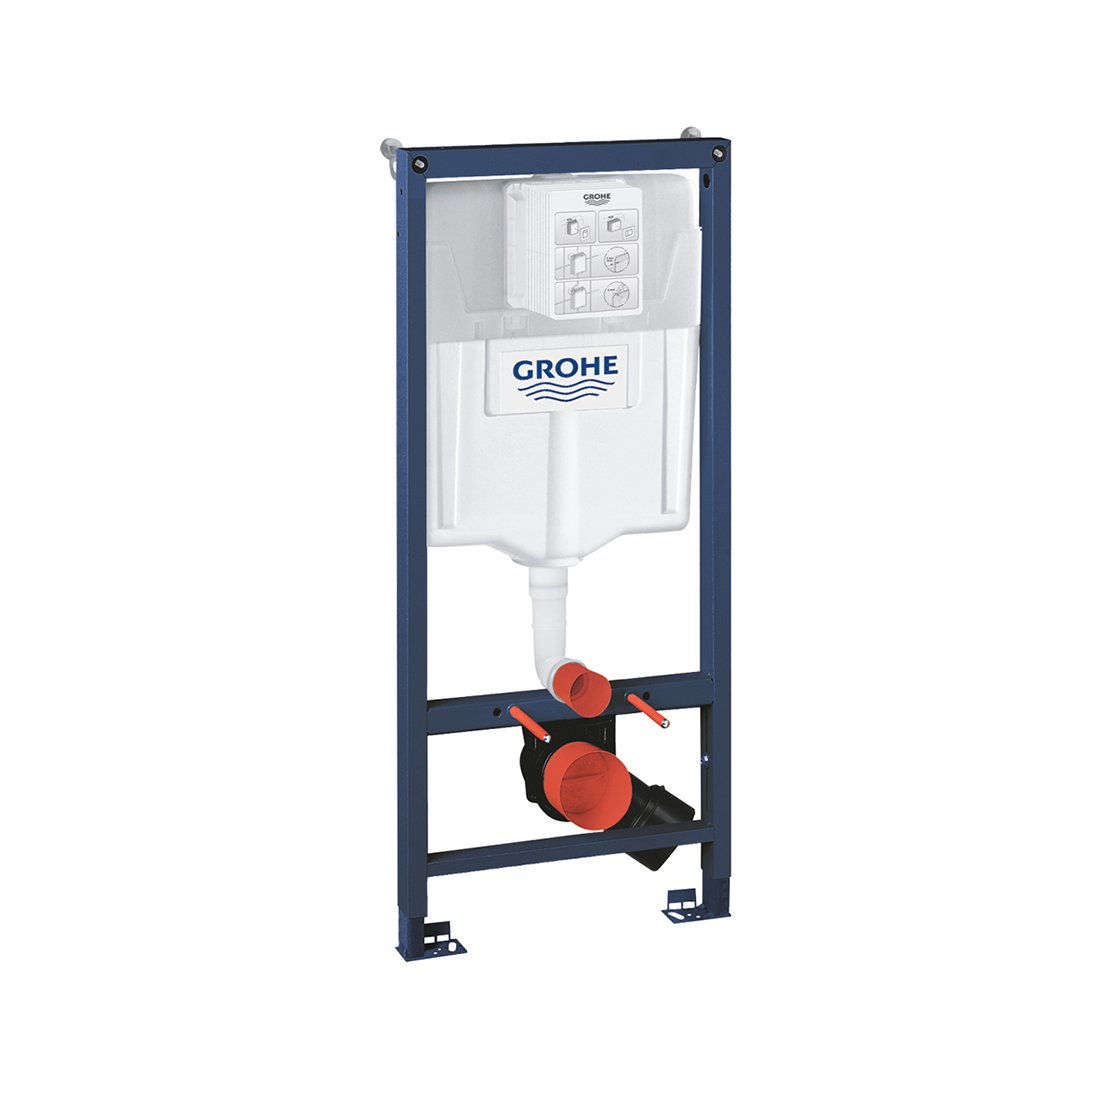 Grohe 38536001 Rapid SL Element for WC- 1.13 M Installation Height